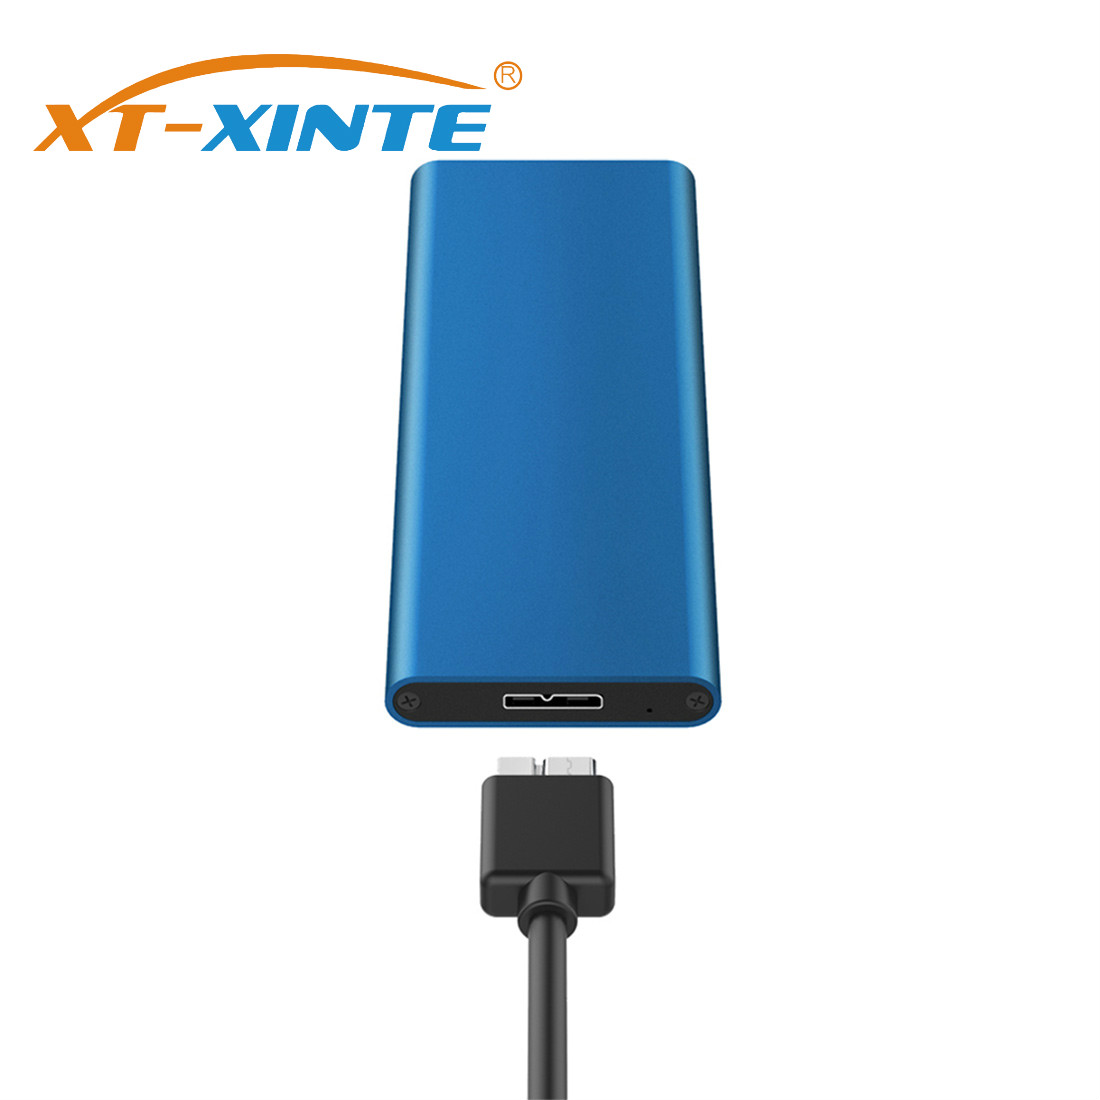 XT-XINTE USB 3.0 To M.2 NGFF SSD Mobile Hard Disk Box Adapter Card External Enclosure Case For SSD USB 3.0 2230/2242/2260/2280